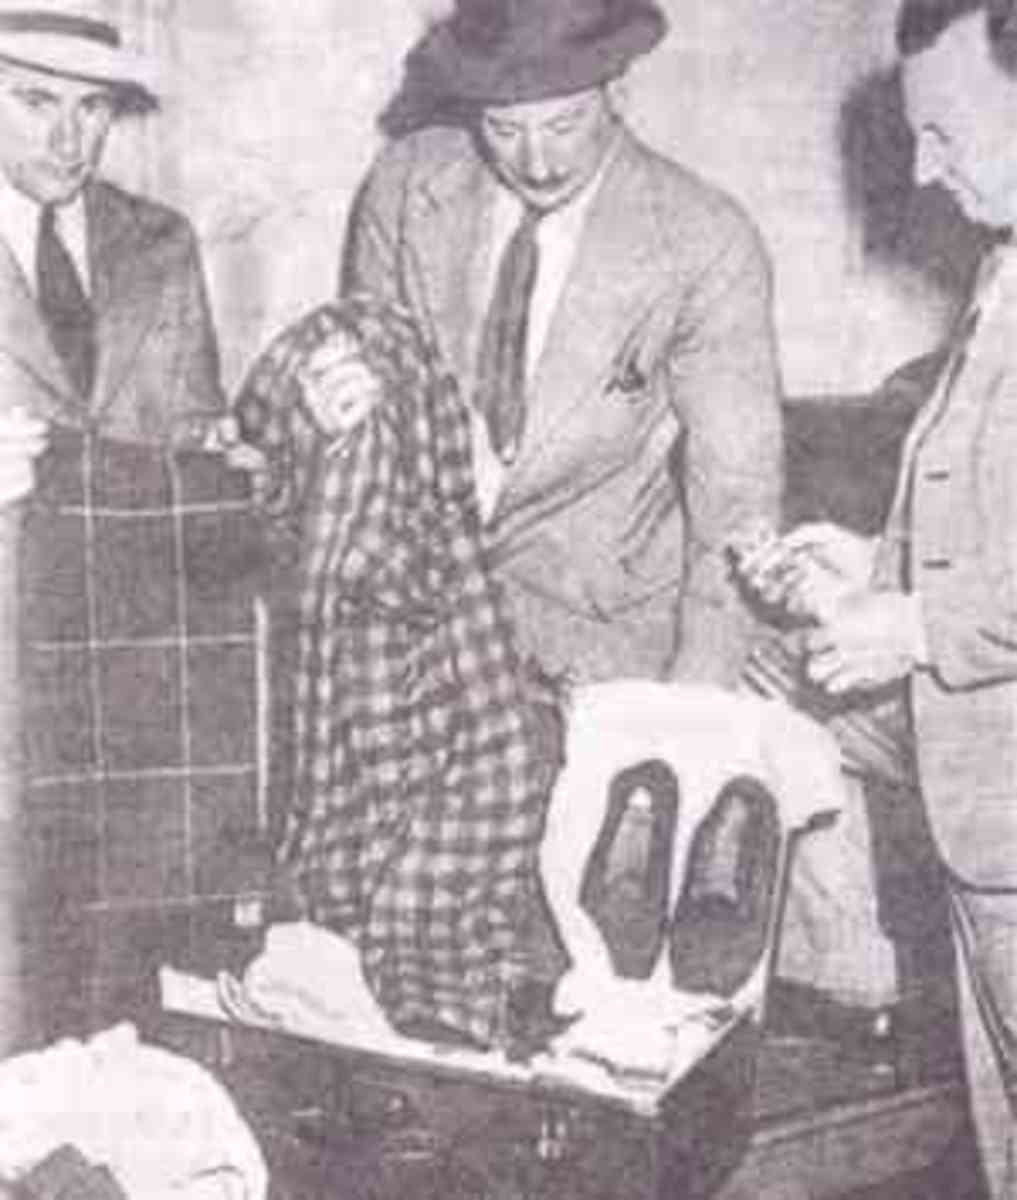 Image of the suitcase belonging to The Somerton Man, found at Adelaide railway station. From left to right are detectives Dave Bartlett, Lionel Leane, and Len Brown.